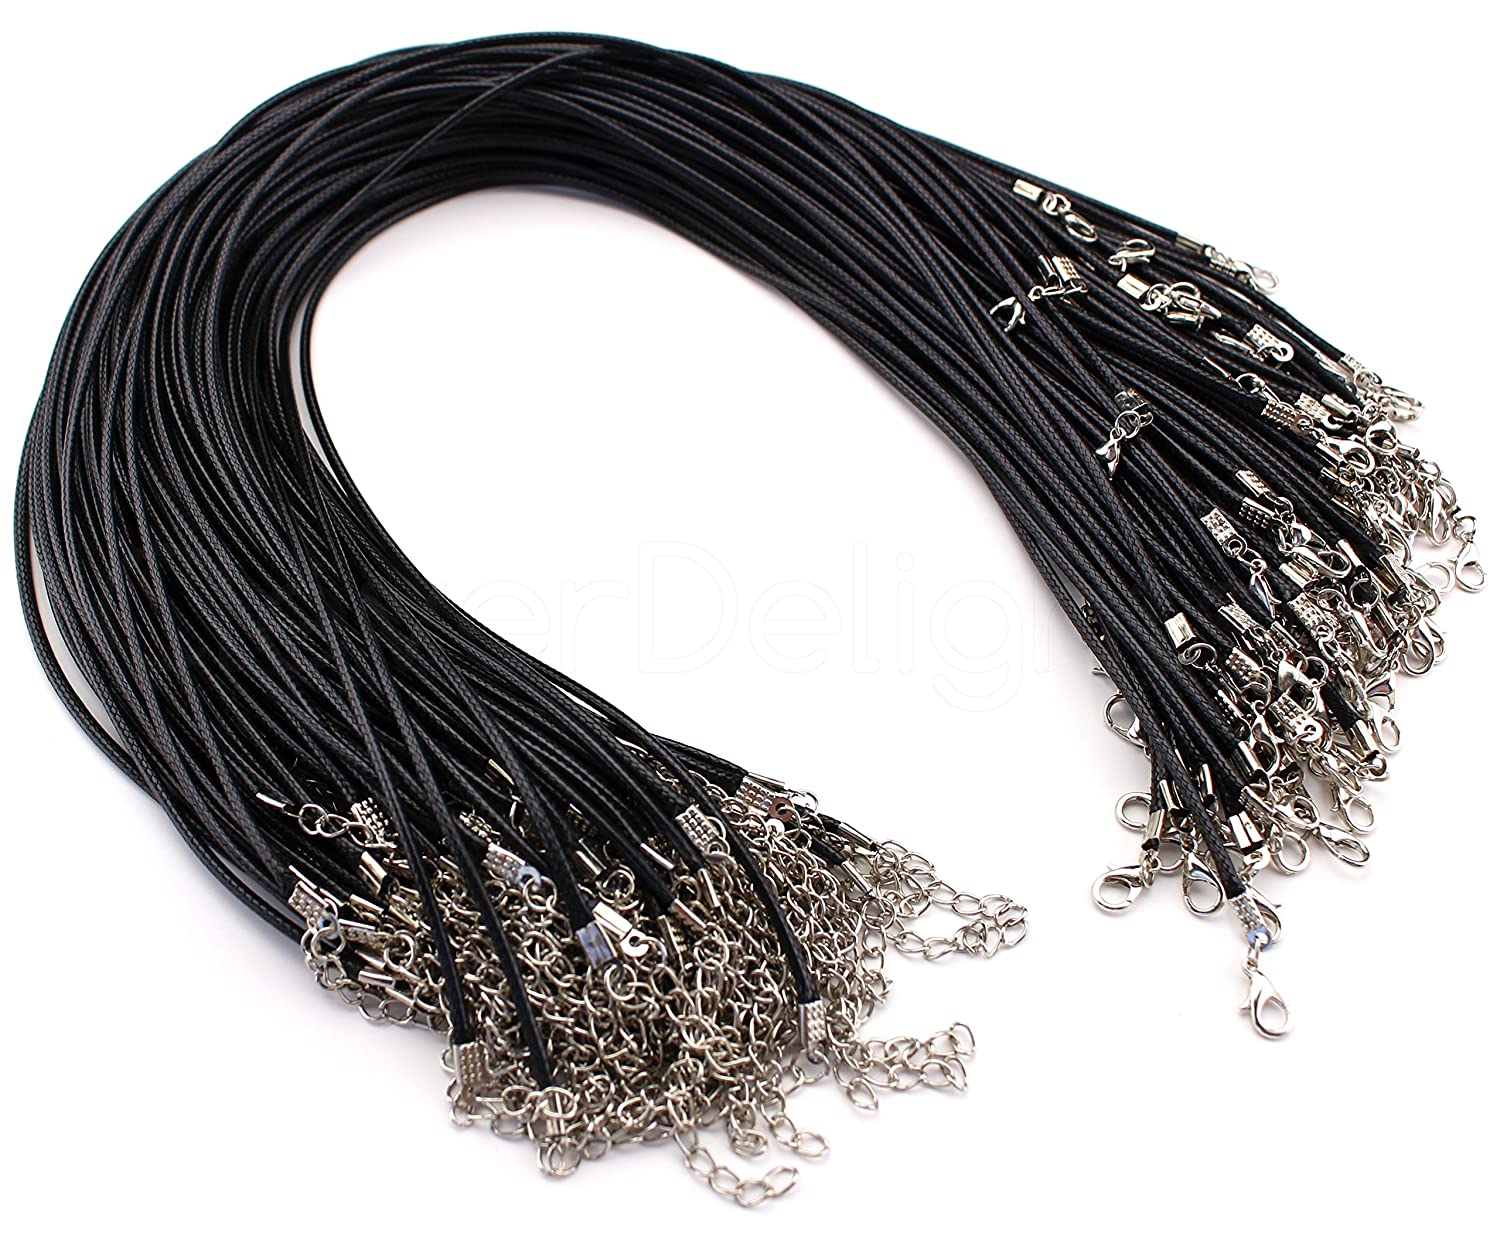 with Lobster Clasp Black 2mm Thick 17 CleverDelights 50 Imitation Leather Cord Necklaces 17 Inch